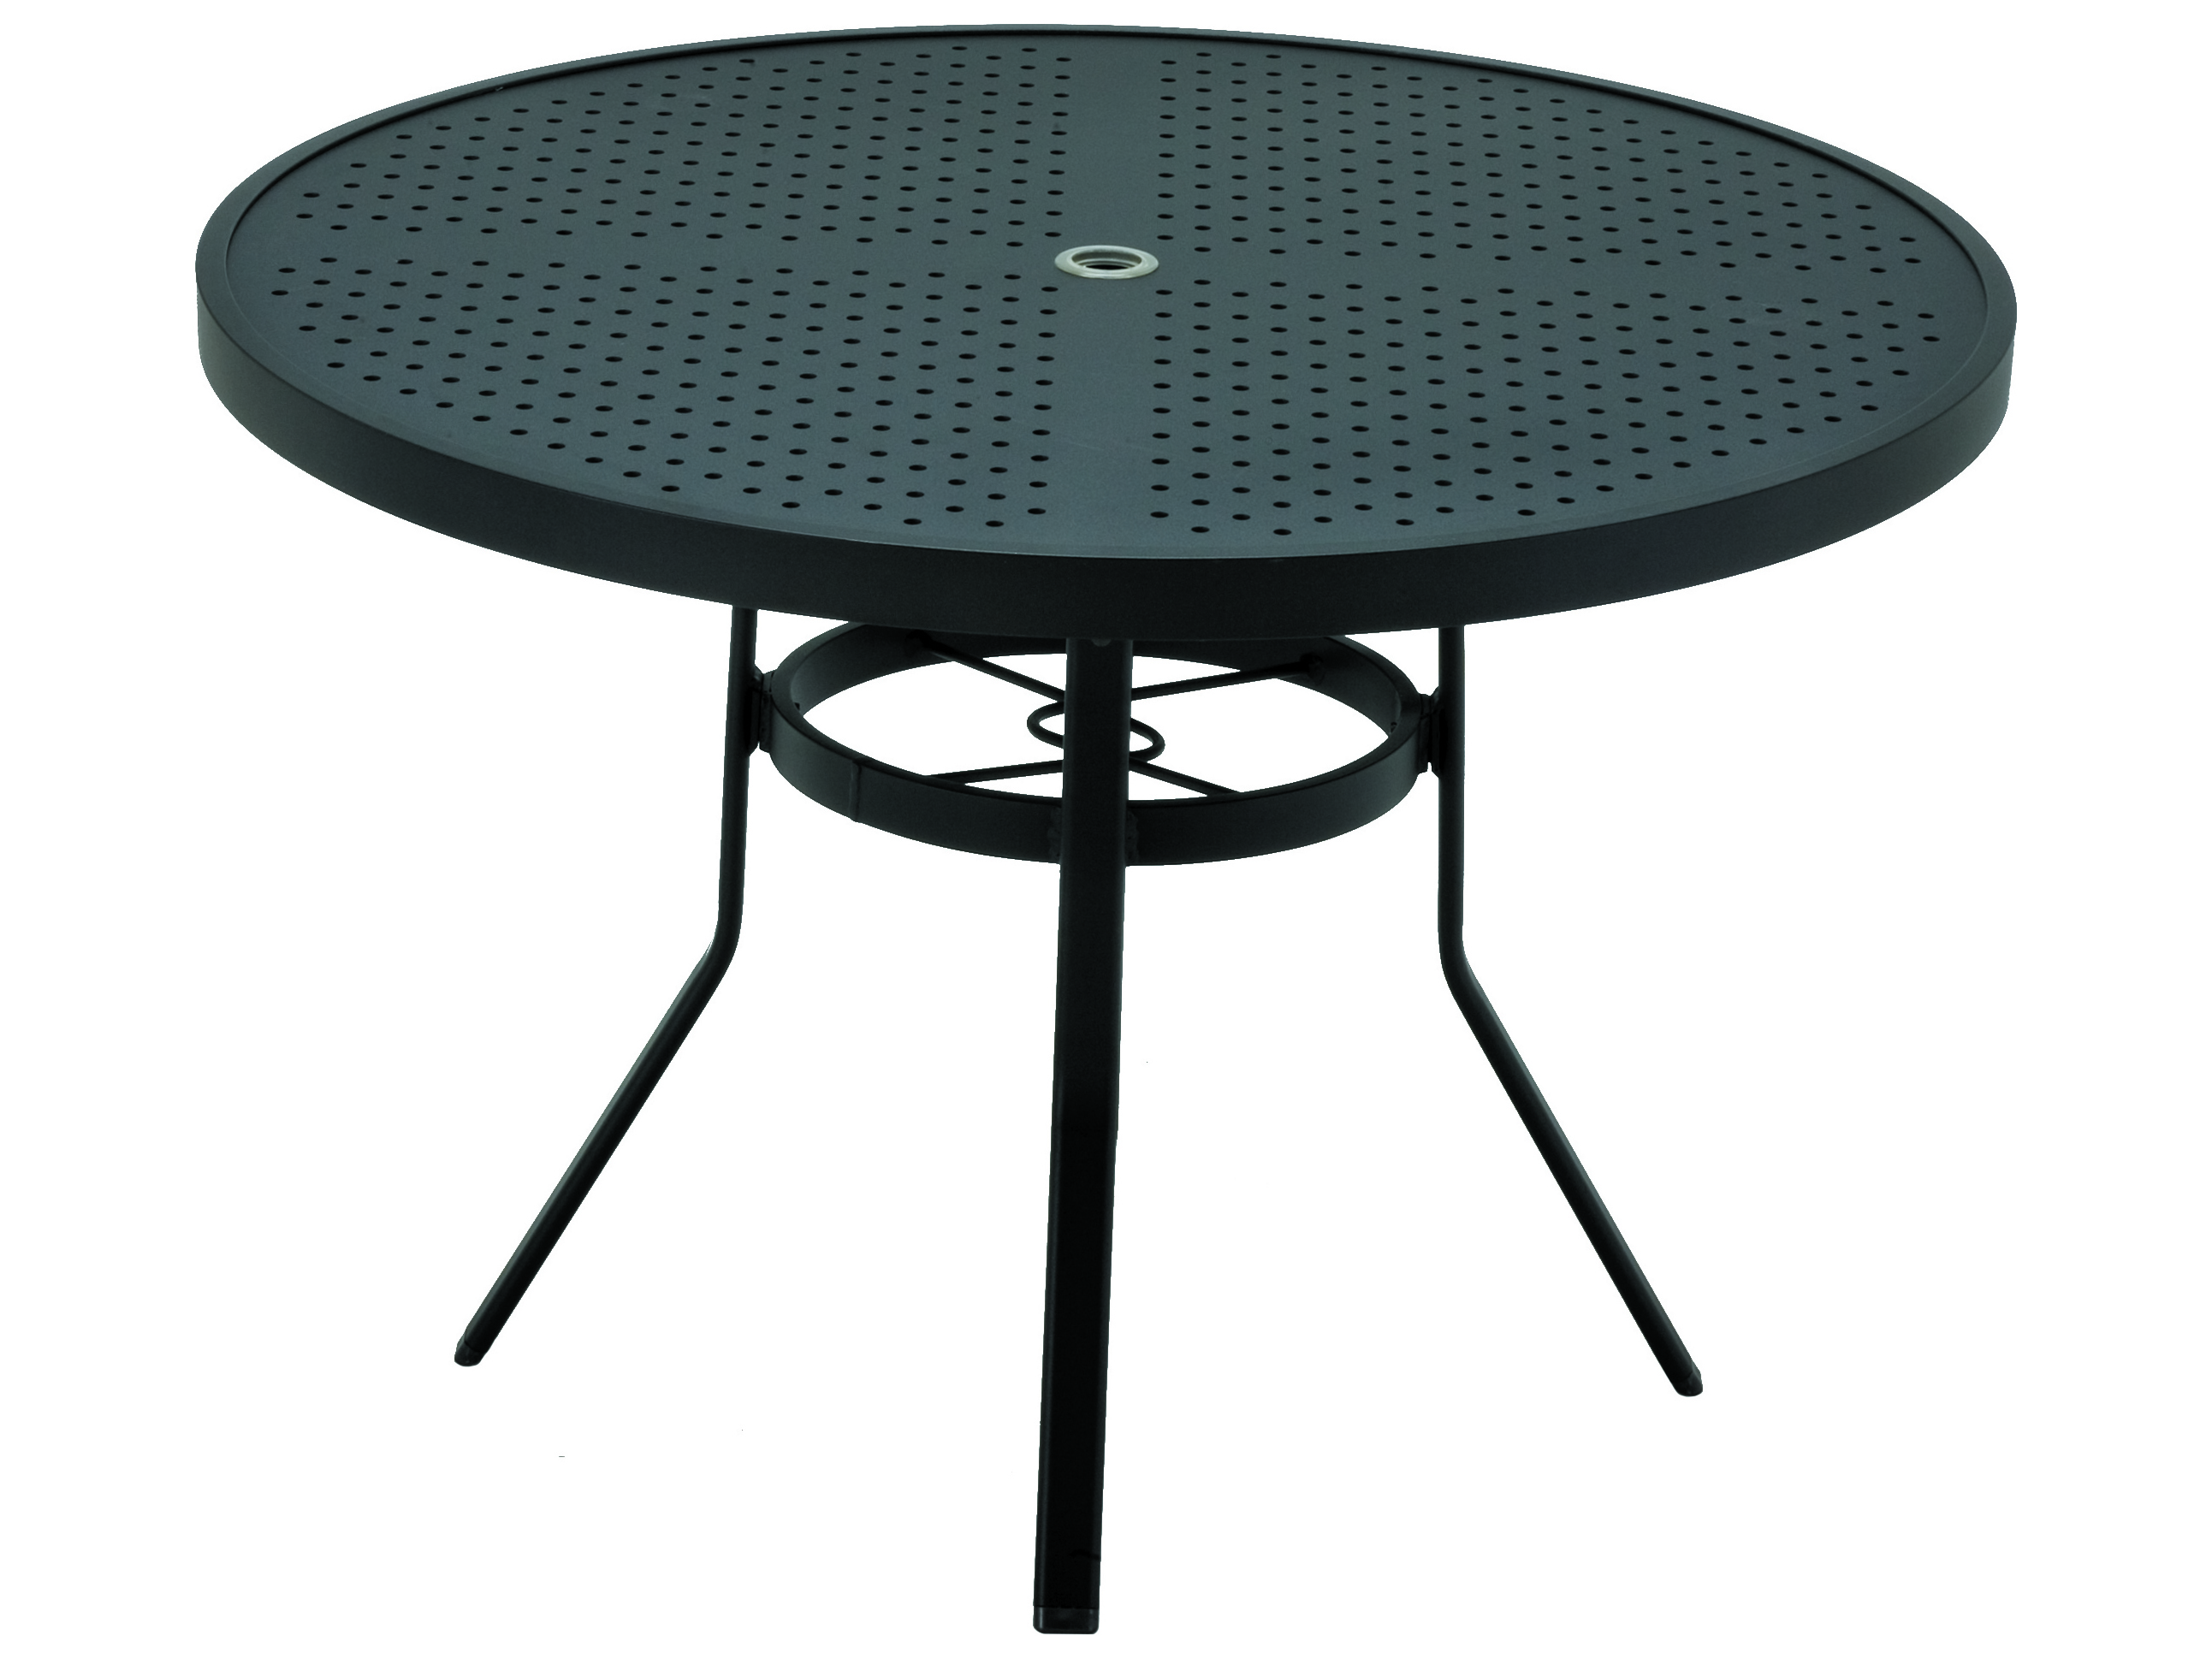 Winston stamped aluminum 42 39 39 round dining table with - Aluminium picnic table with umbrella ...